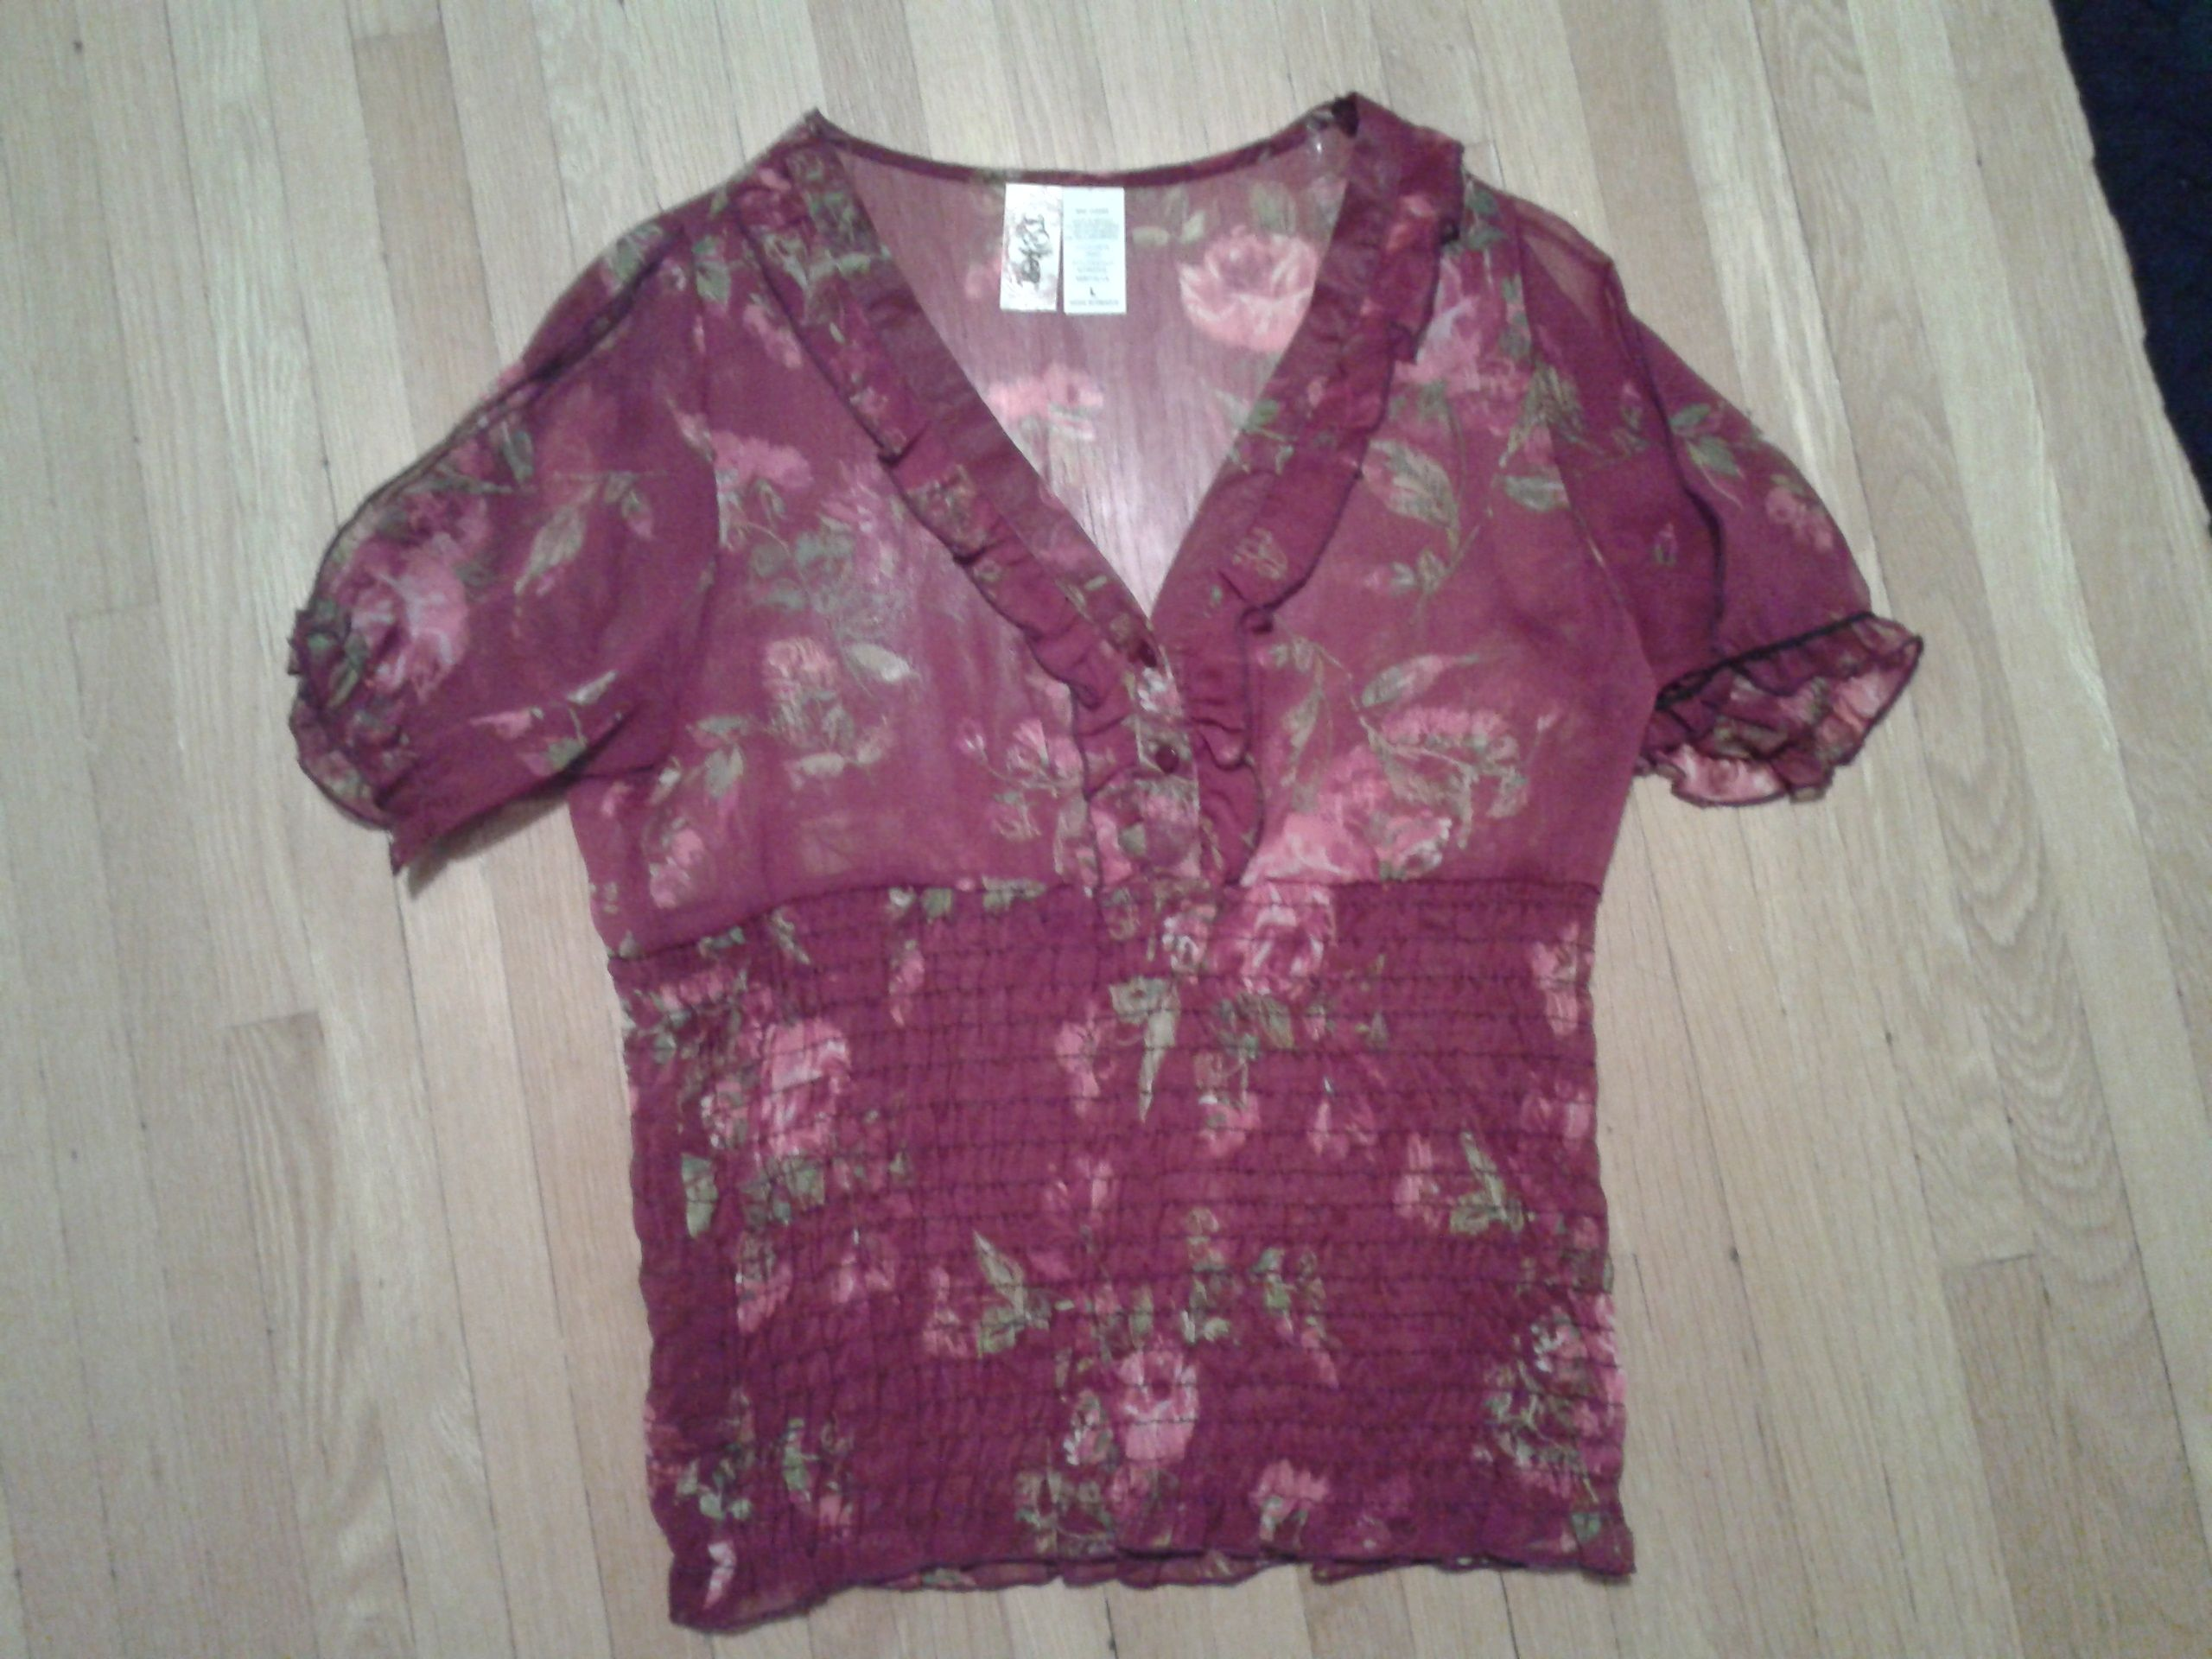 floral shirt in Tidyingup's Garage Sale Helena, MT for $5.00. Sheer floral shirt. size L. Only worn once.